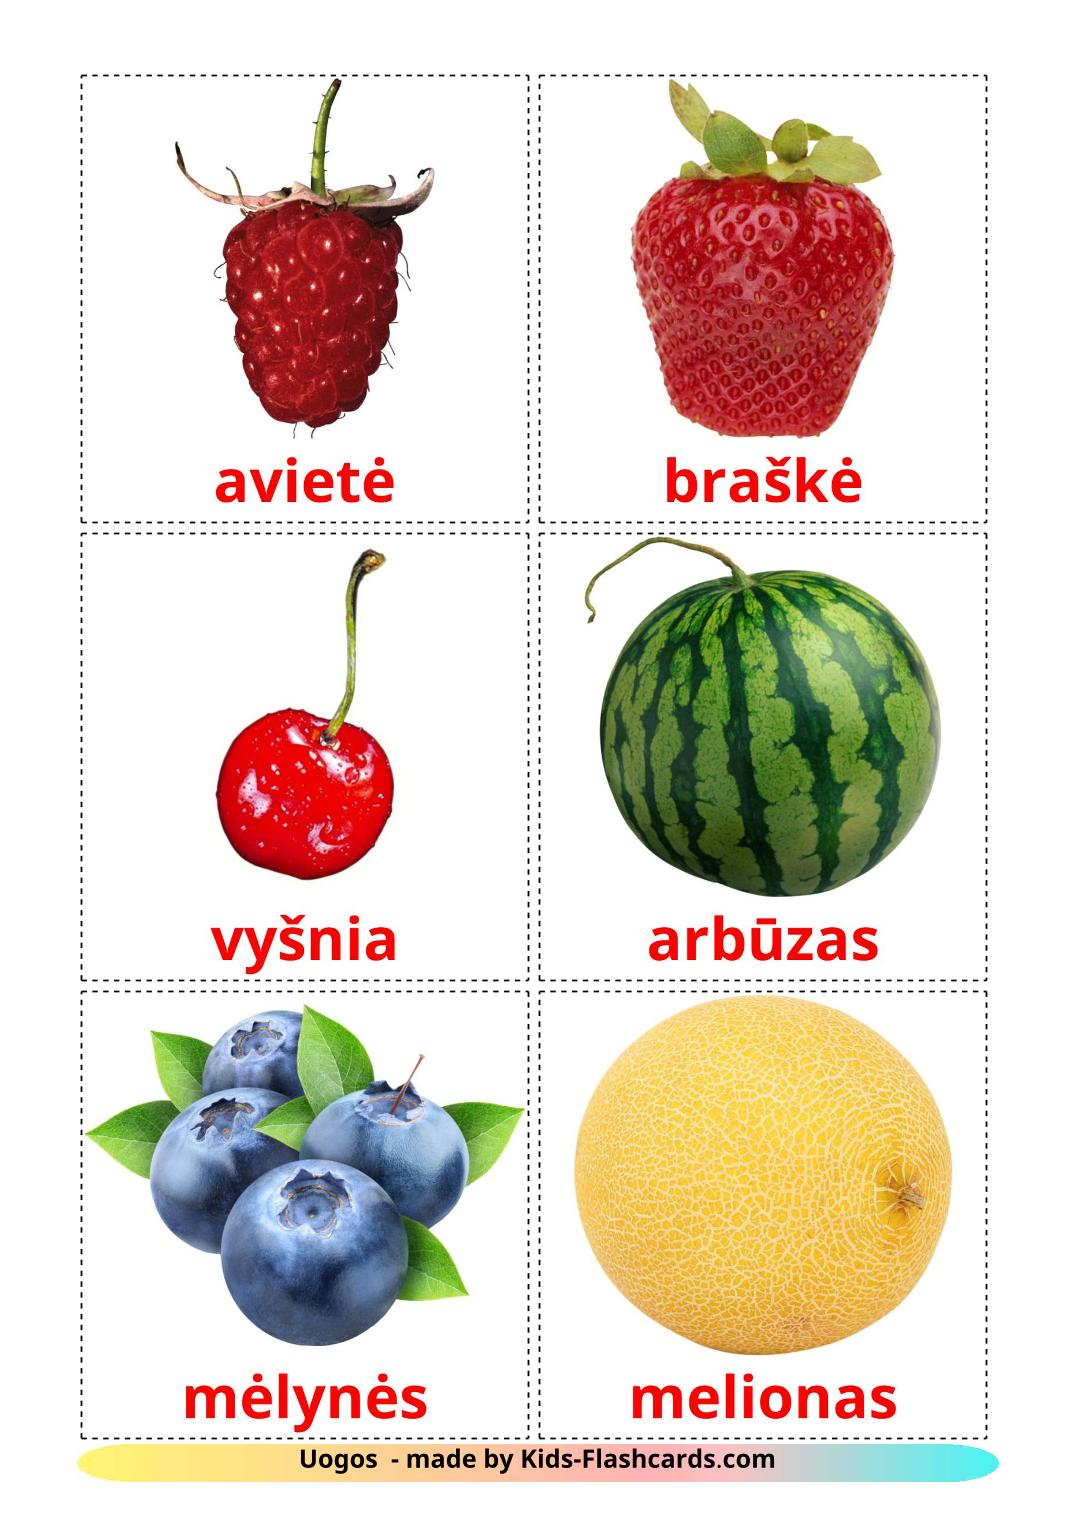 Berries - 11 Free Printable lithuanian Flashcards